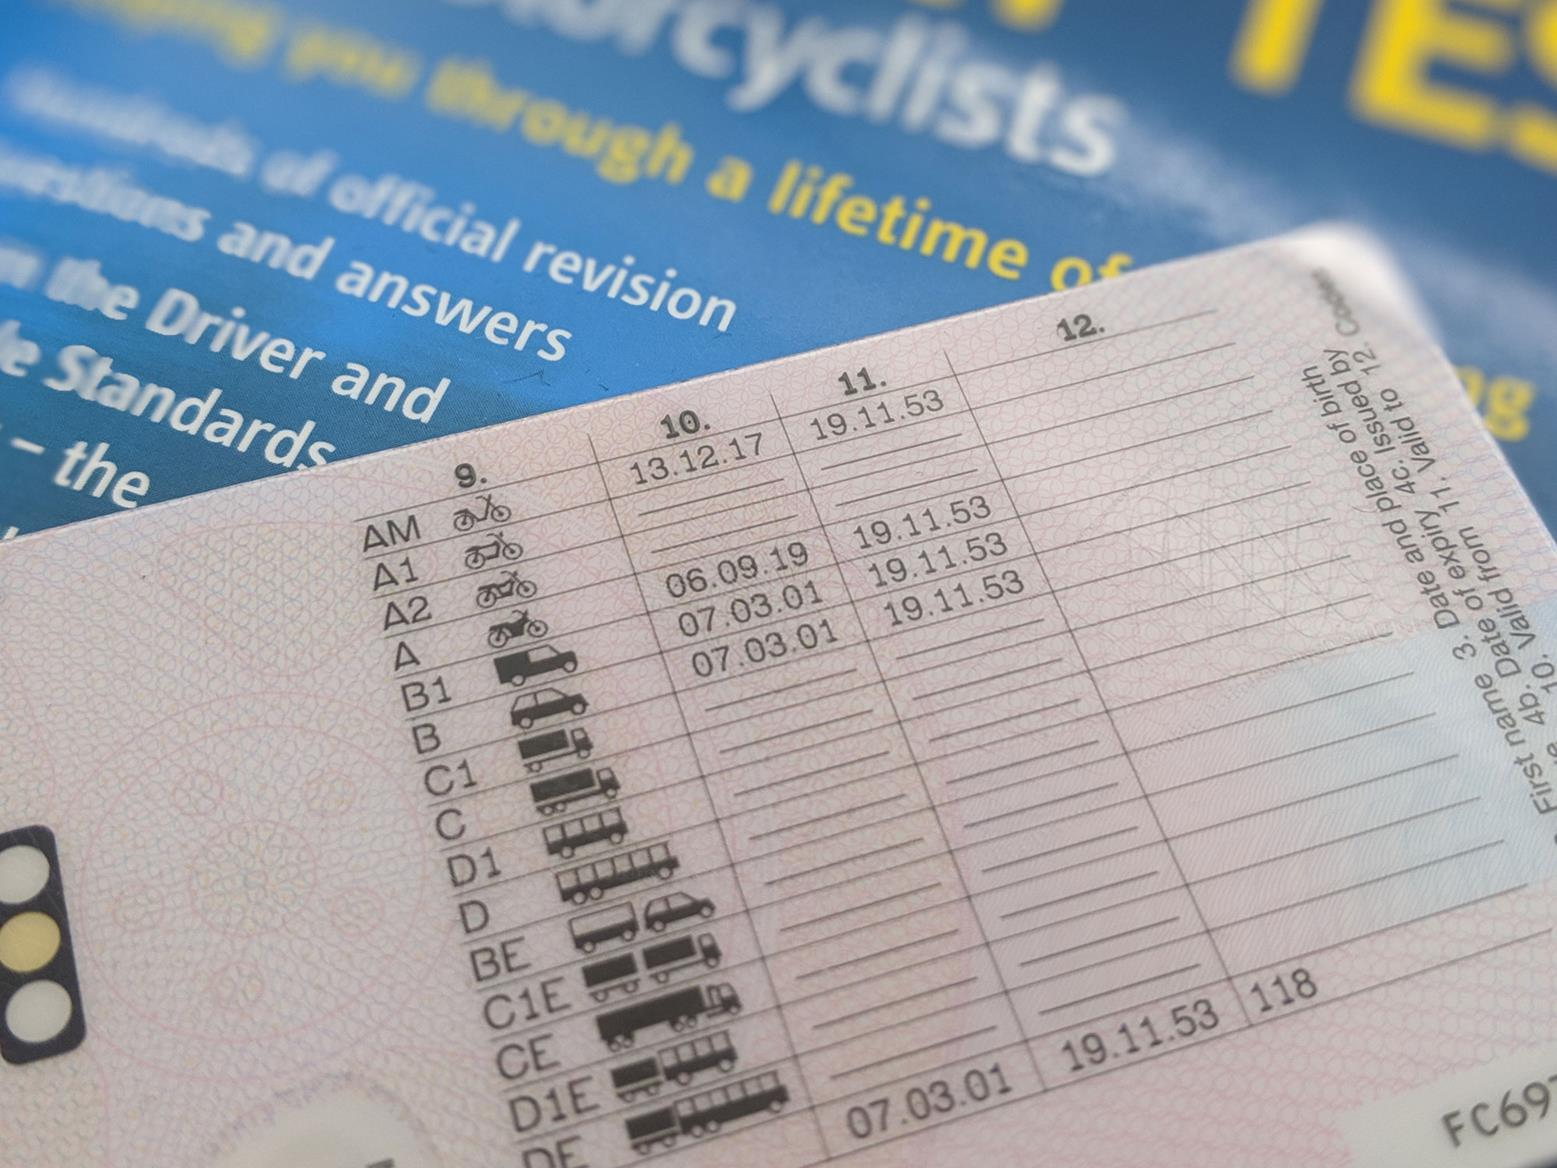 You can spend a lot of money trying to get the 'A' category filled in on your UK driving licence